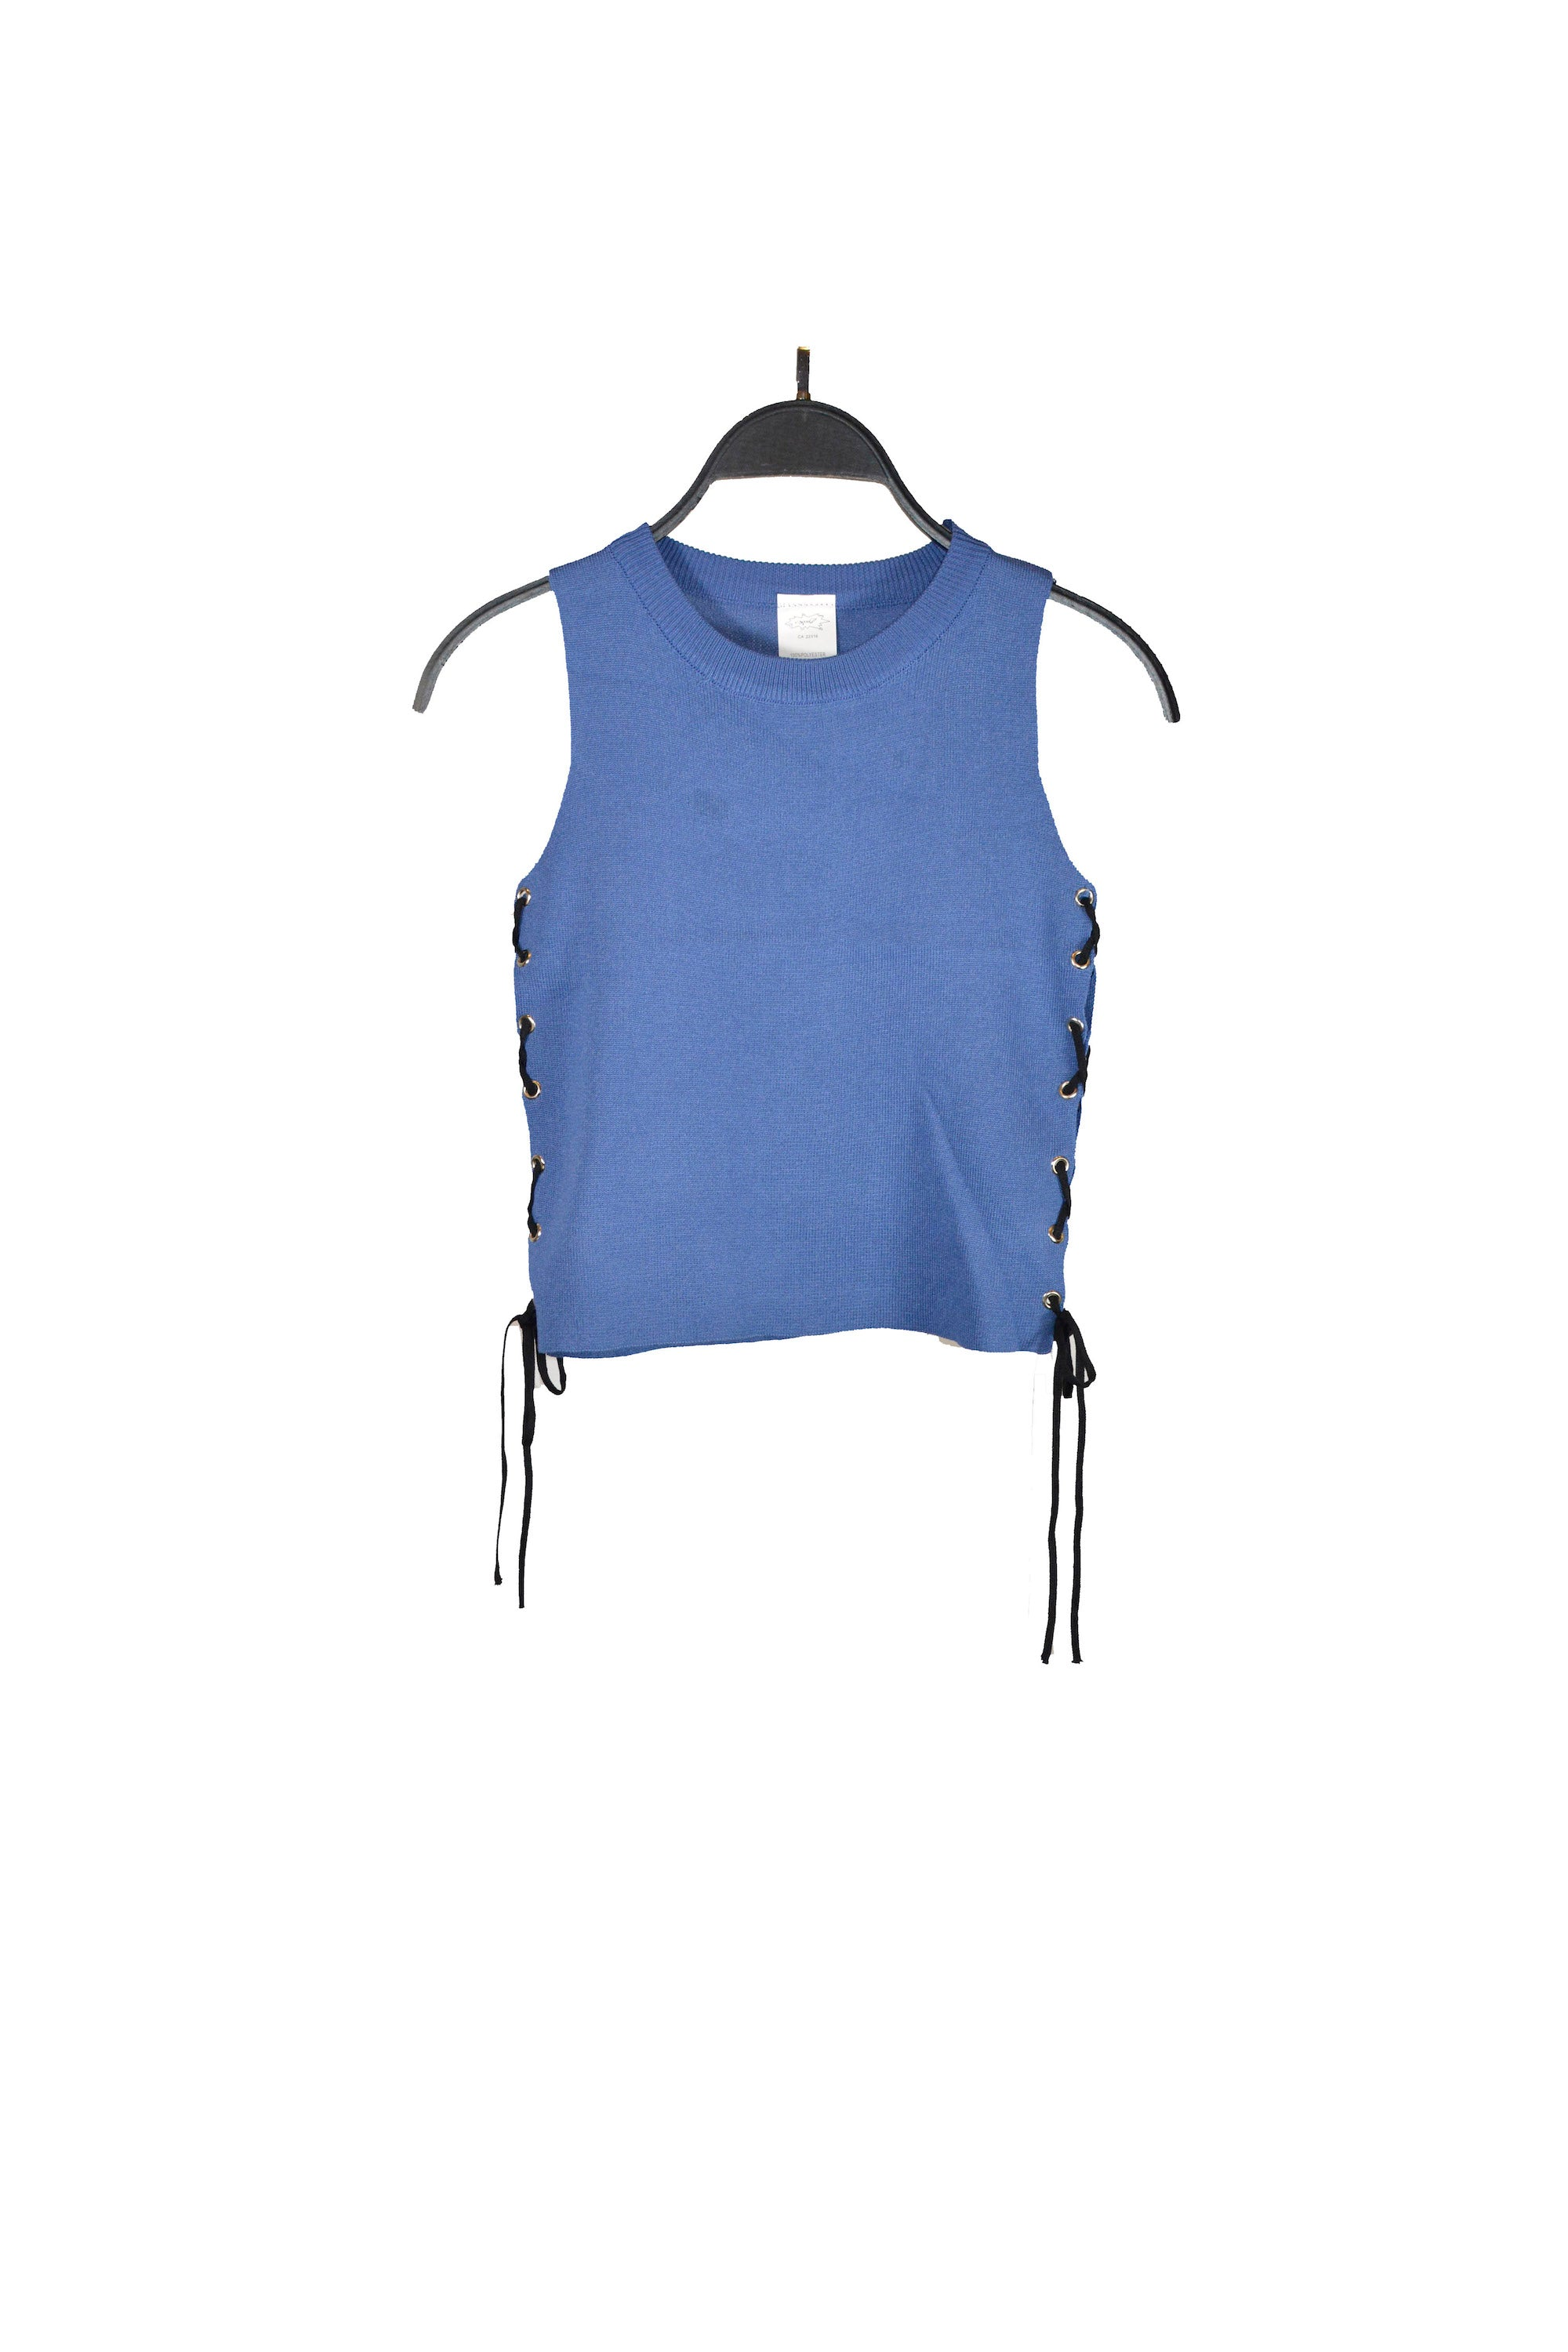 Copy of Blue Side Lace-Up Tank Top